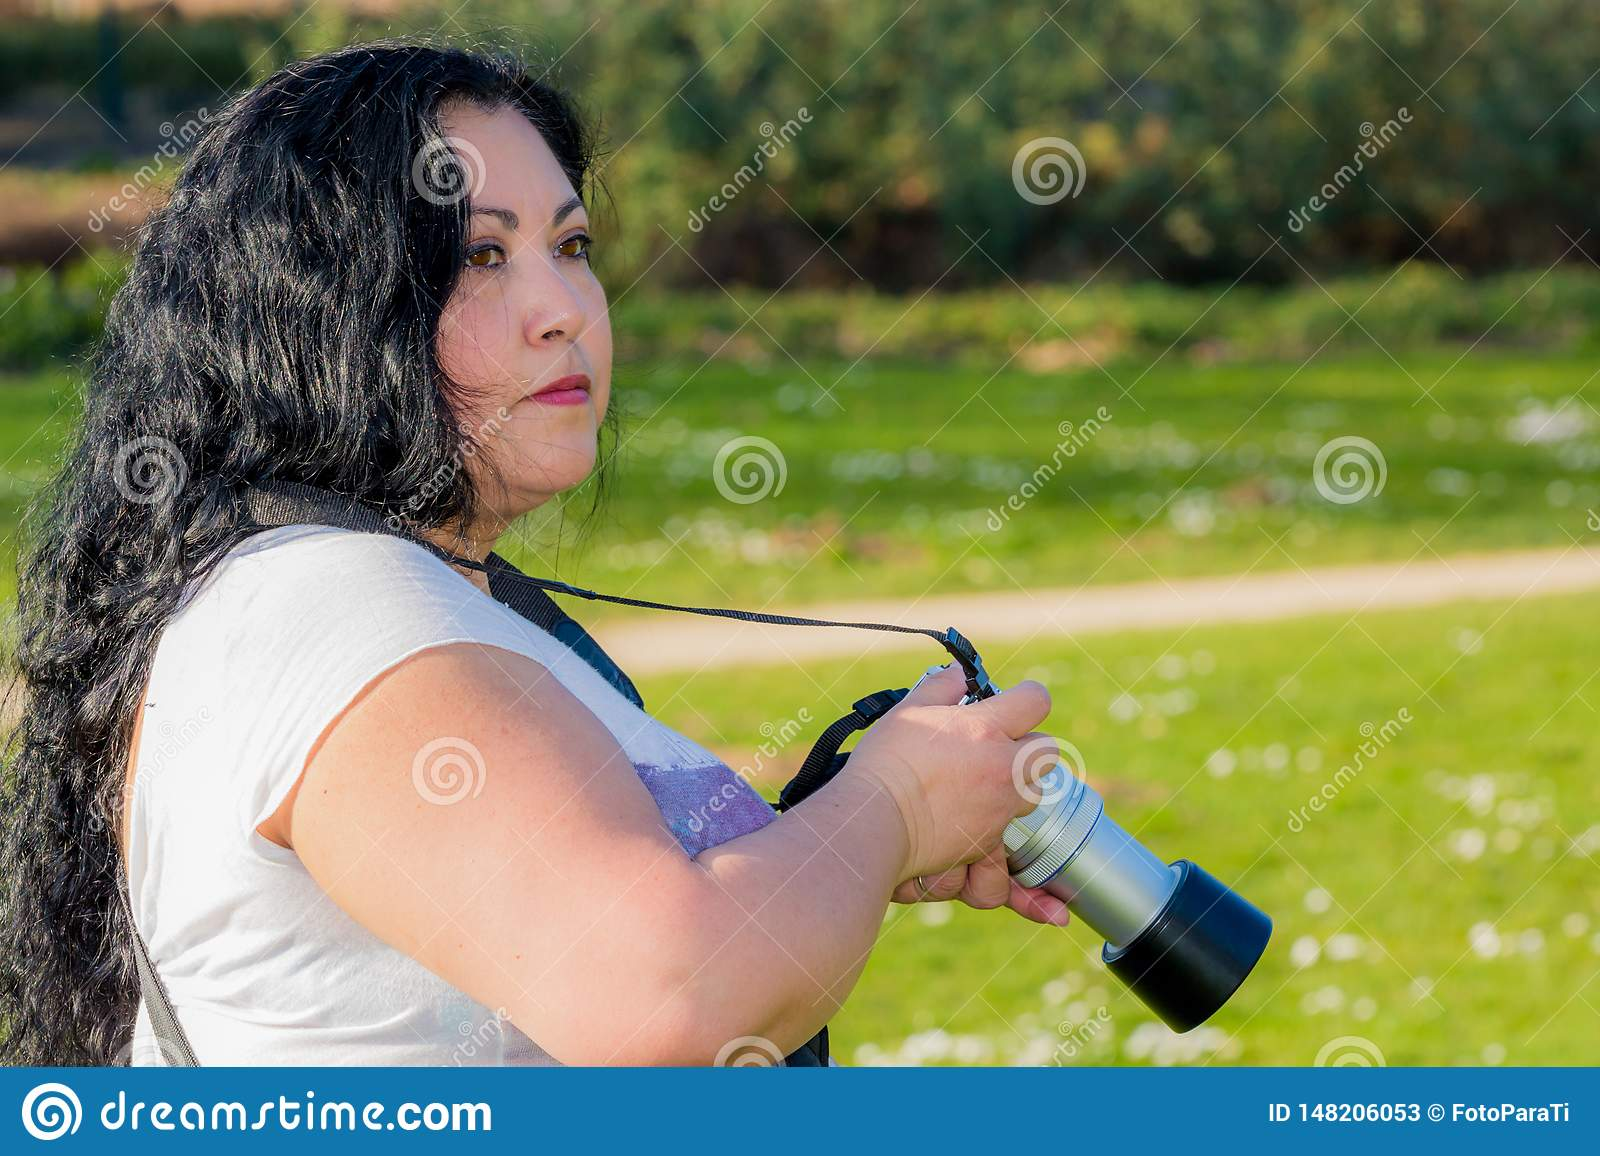 Beautiful woman analyzing the place to see where she will take her next picture